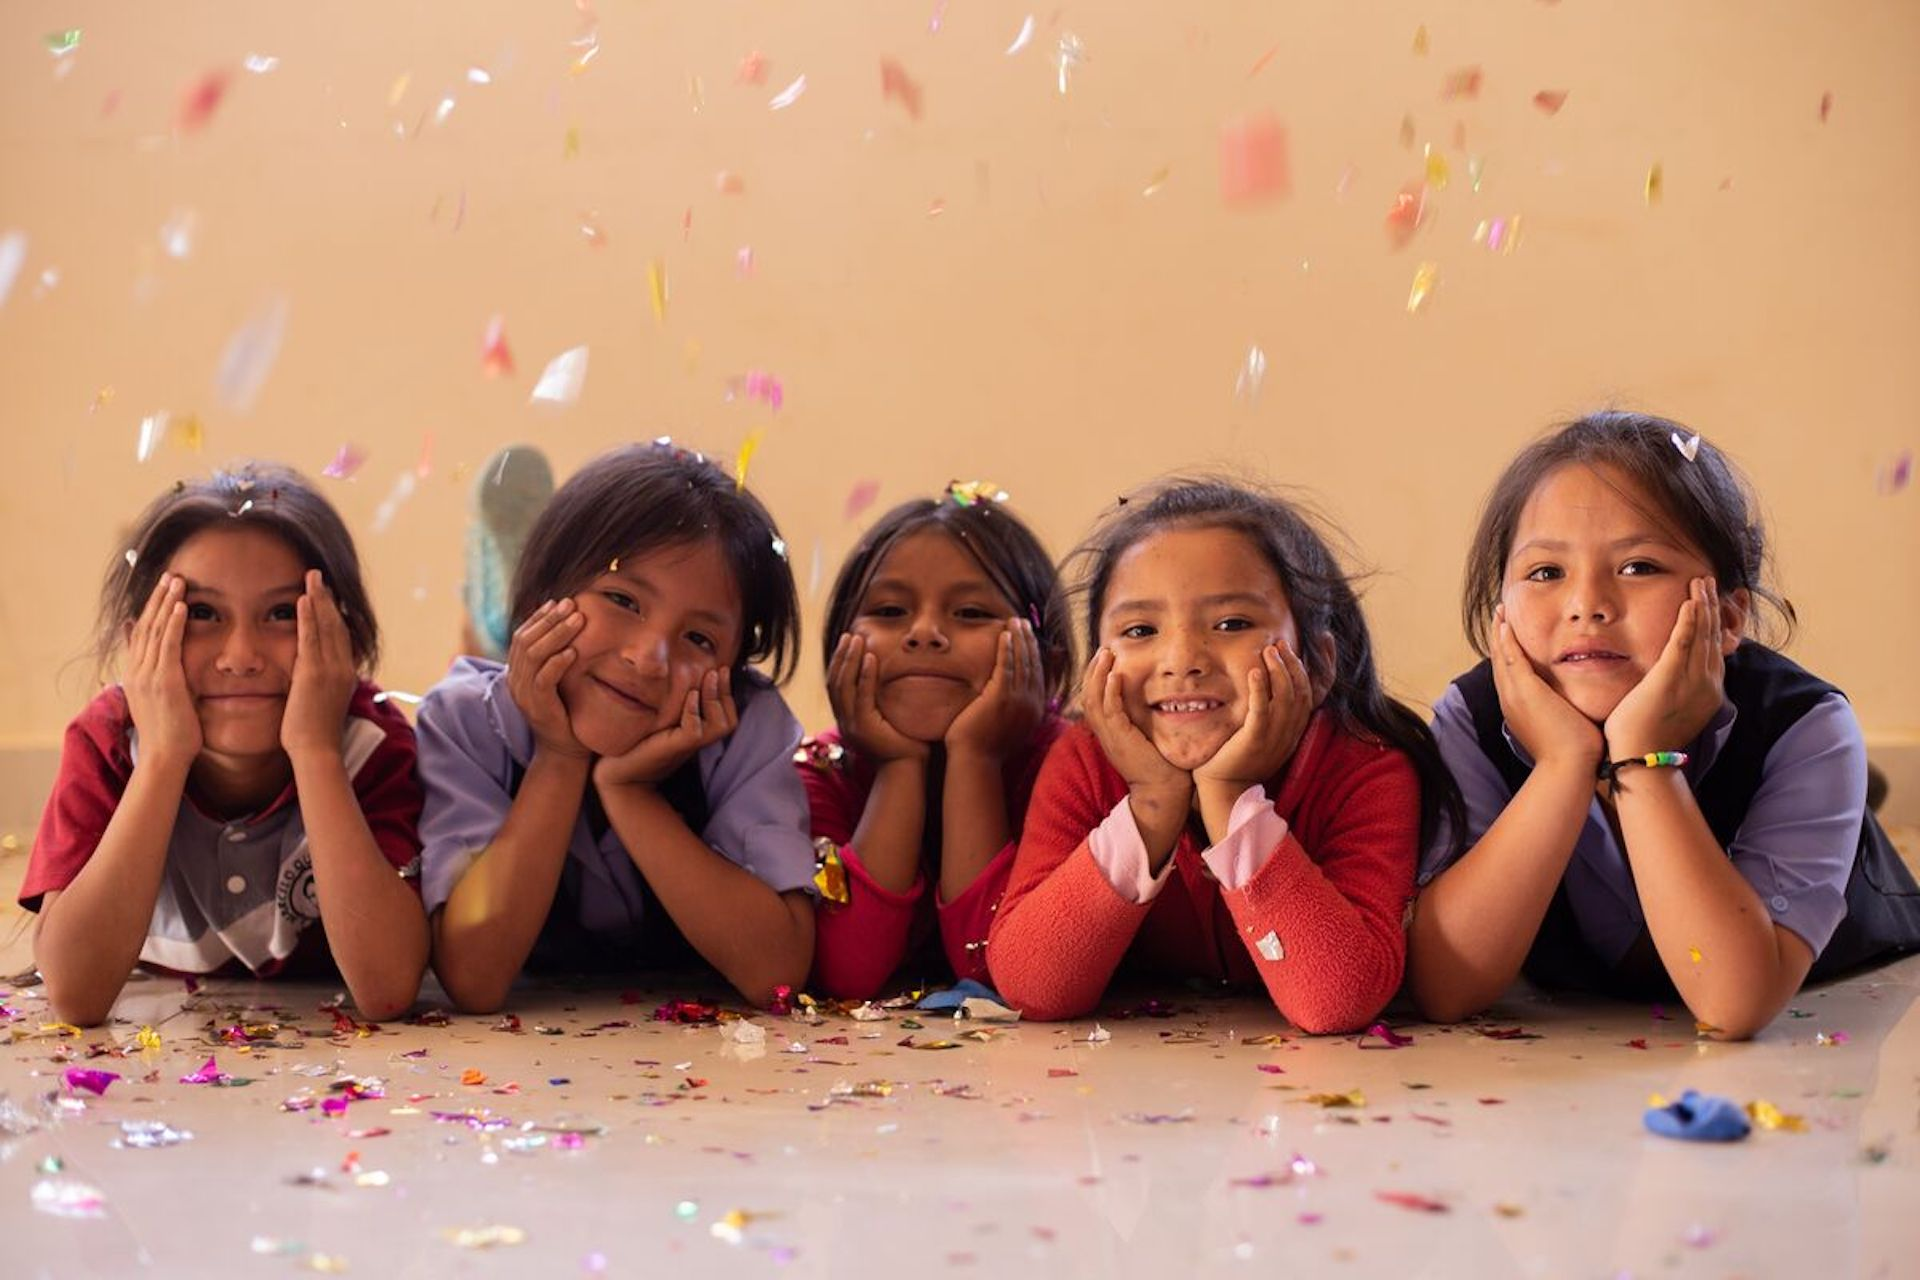 A row of girls lie on their stomachs with their chins in their hands, smiling, with confetti falling around them.